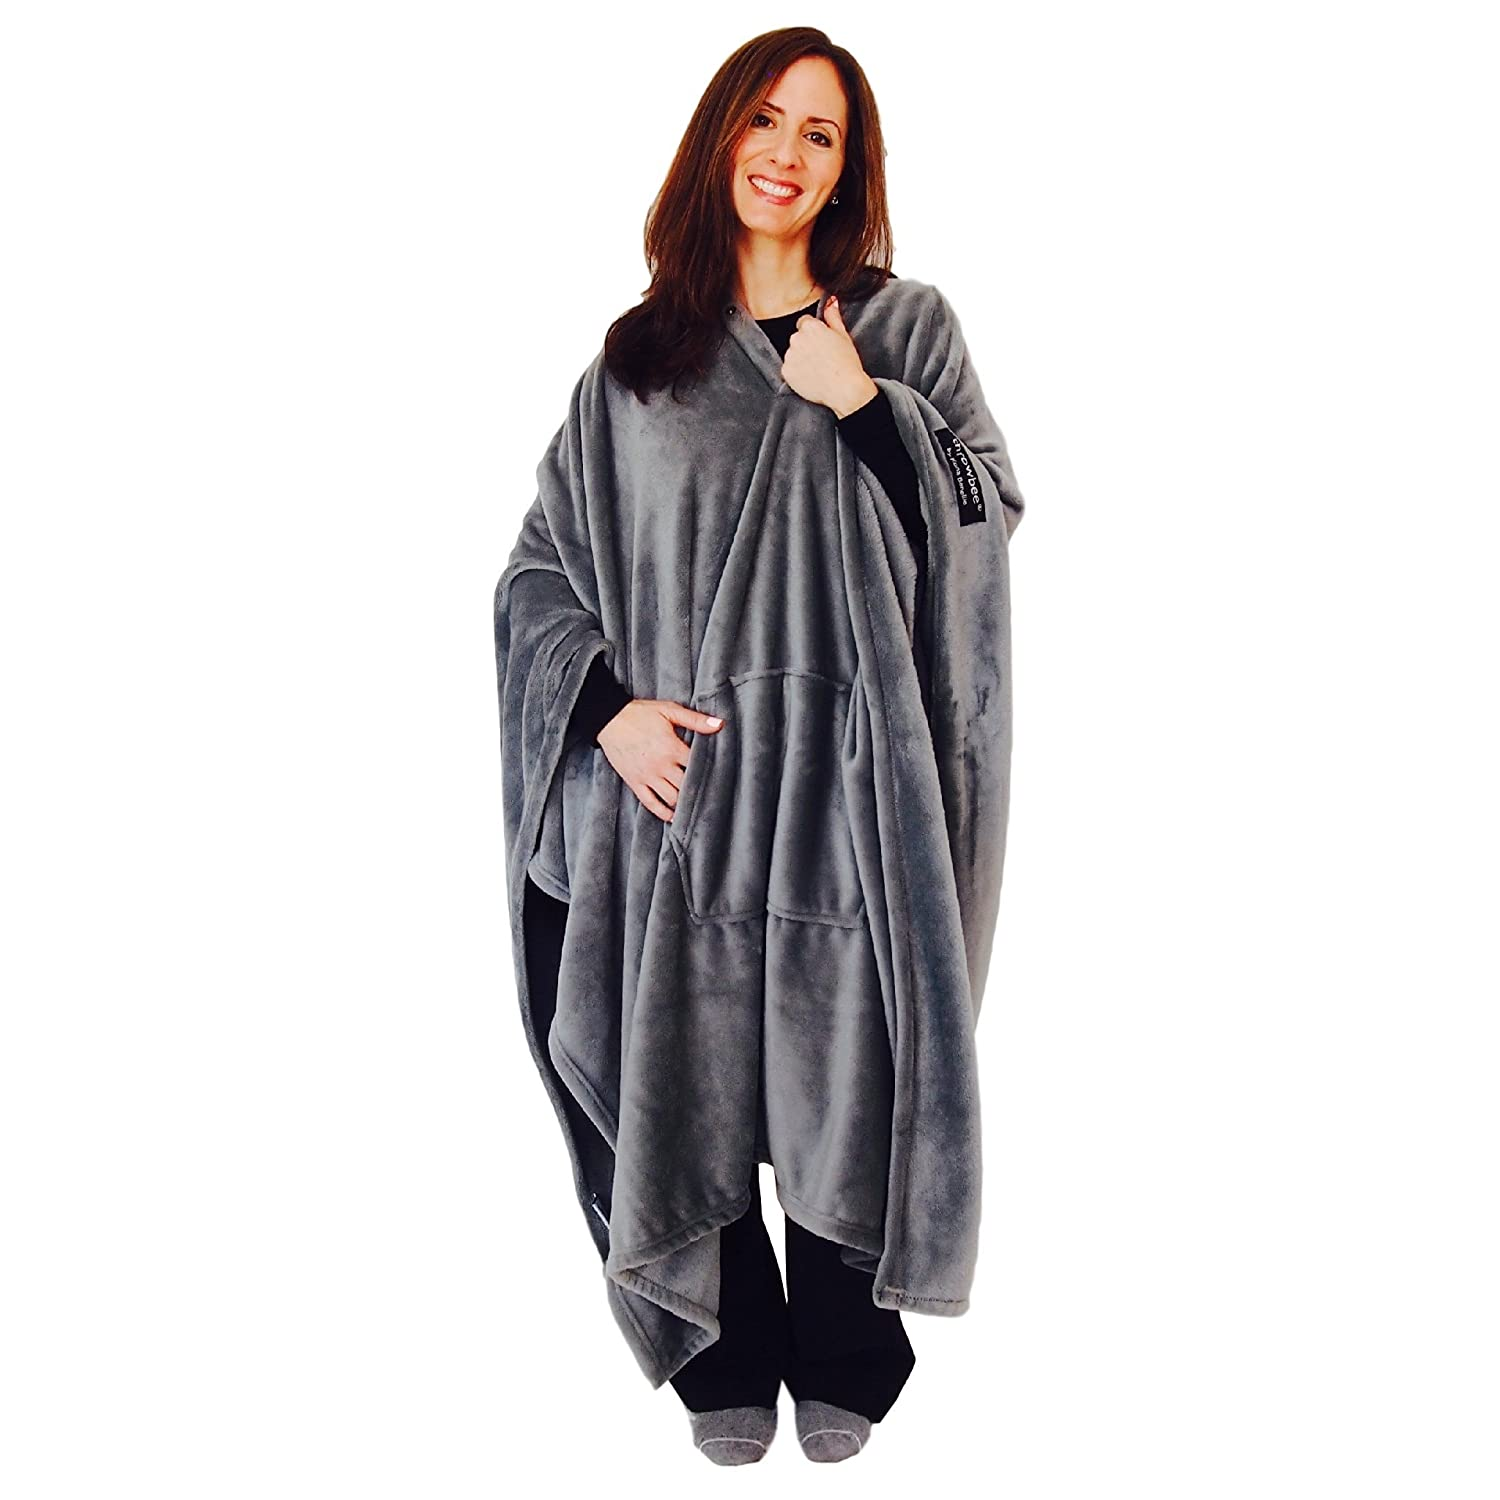 throwbee Original Blanket-Poncho Gray Grey (Yay! NO Sleeves) Best Wearable Blanket on The Planet Soft Throw Indoors or Outdoors - Adults Men Women Kids